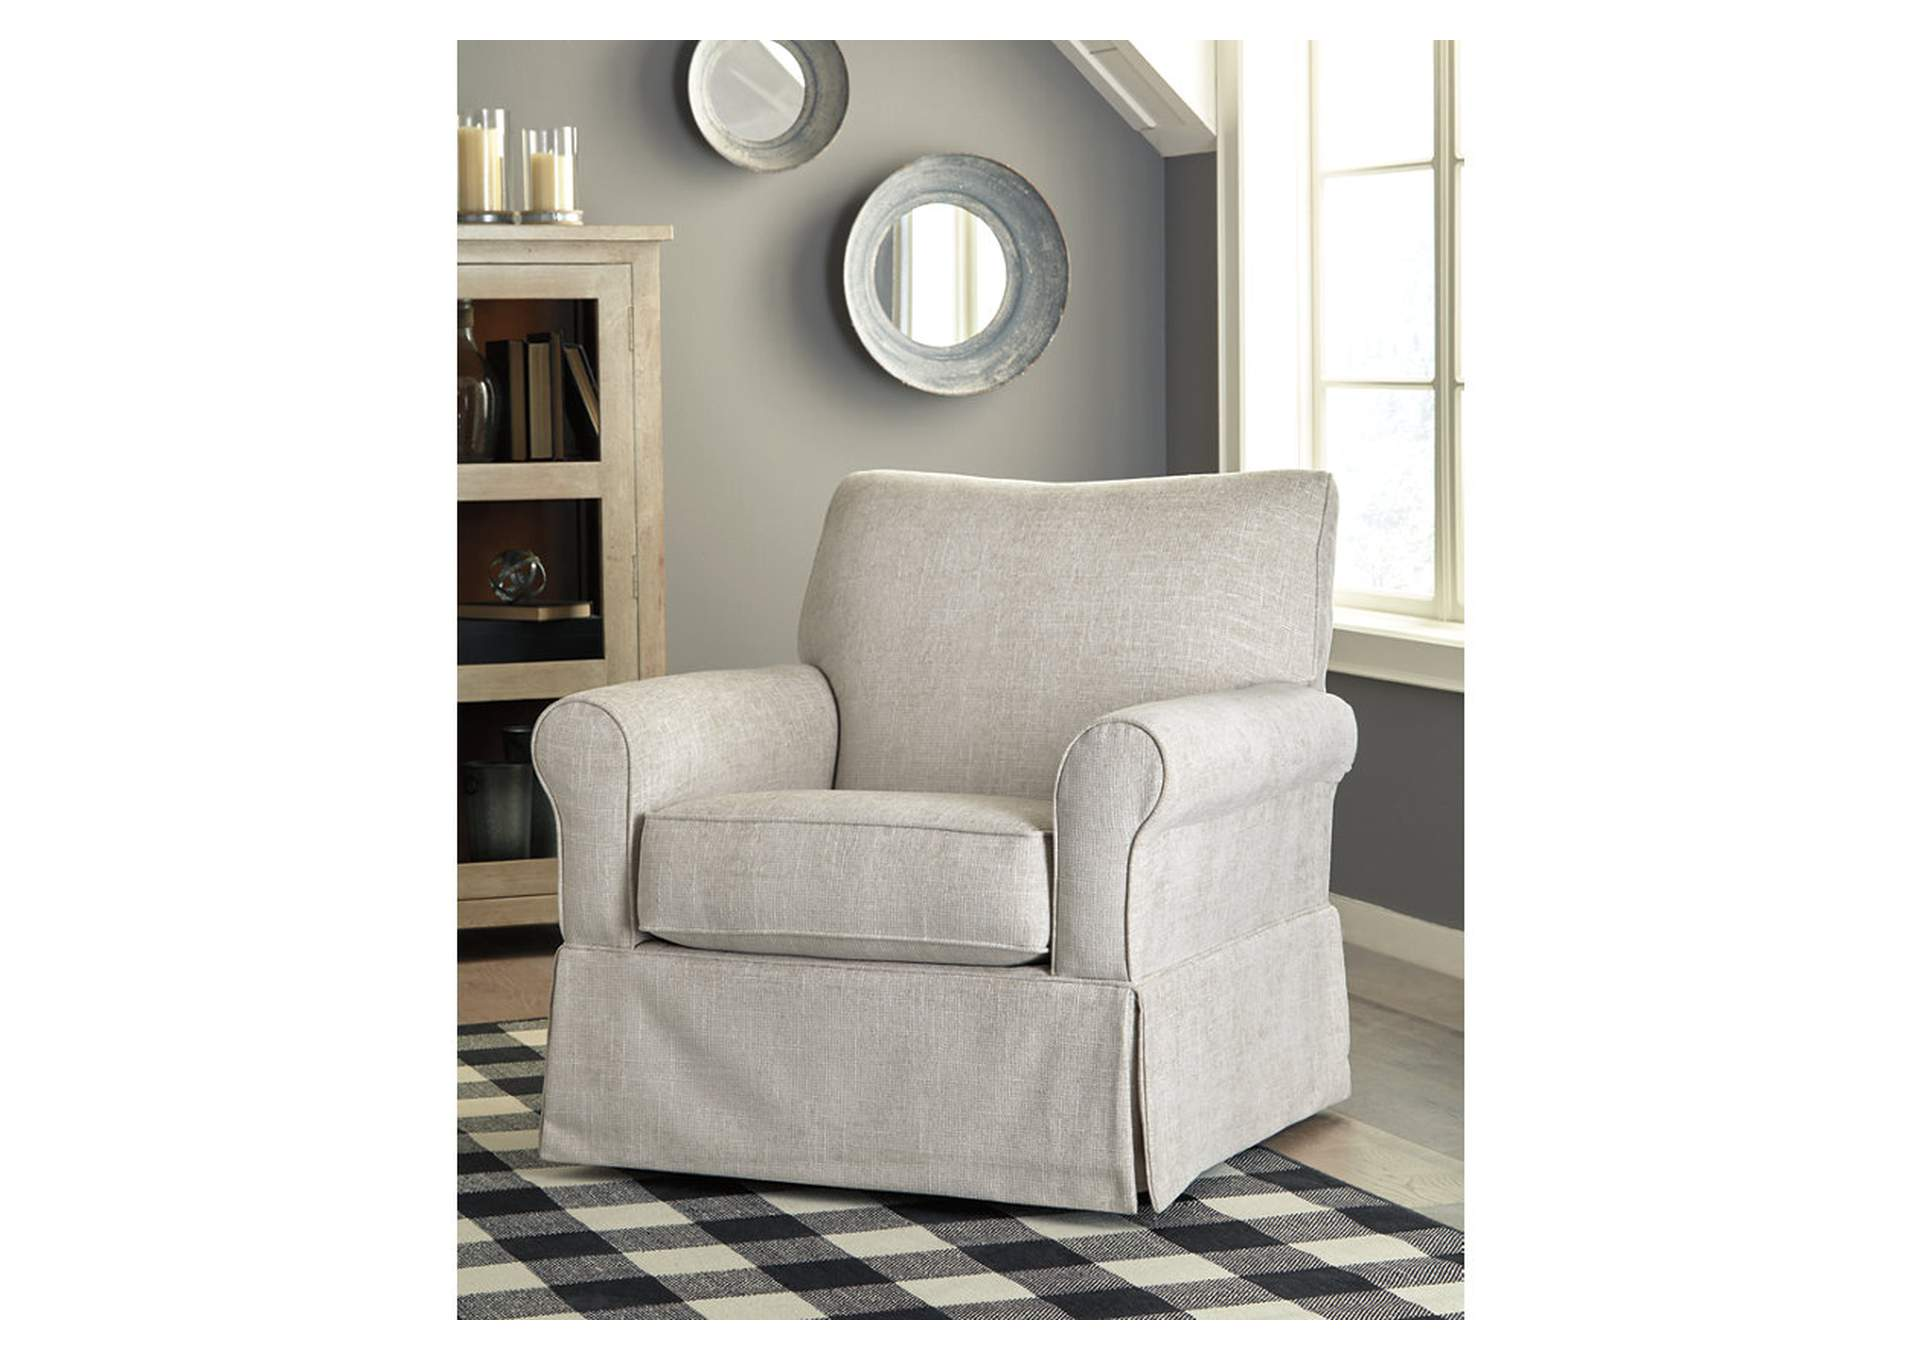 Searcy Quartz Swivel Glider Accent Chair,Signature Design By Ashley